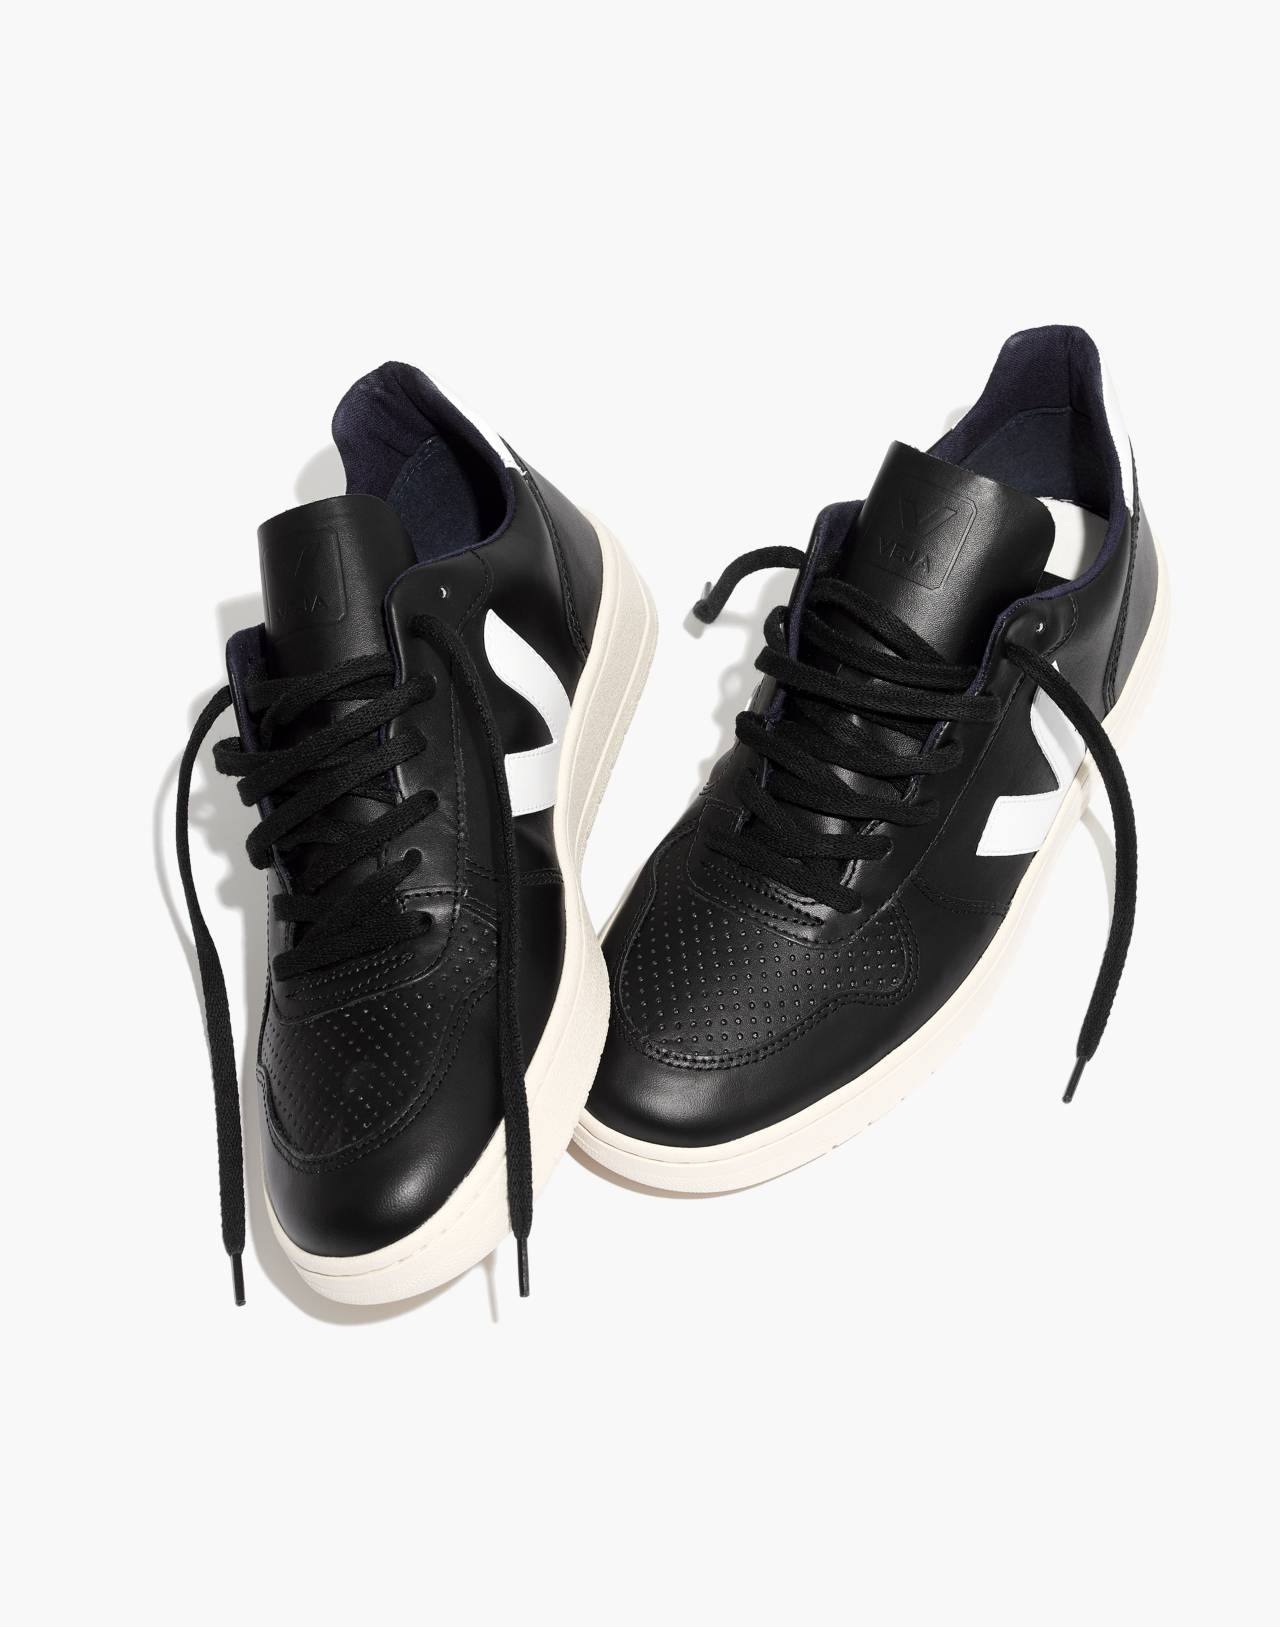 Veja™ Men's V-10 Sneakers in black white image 2